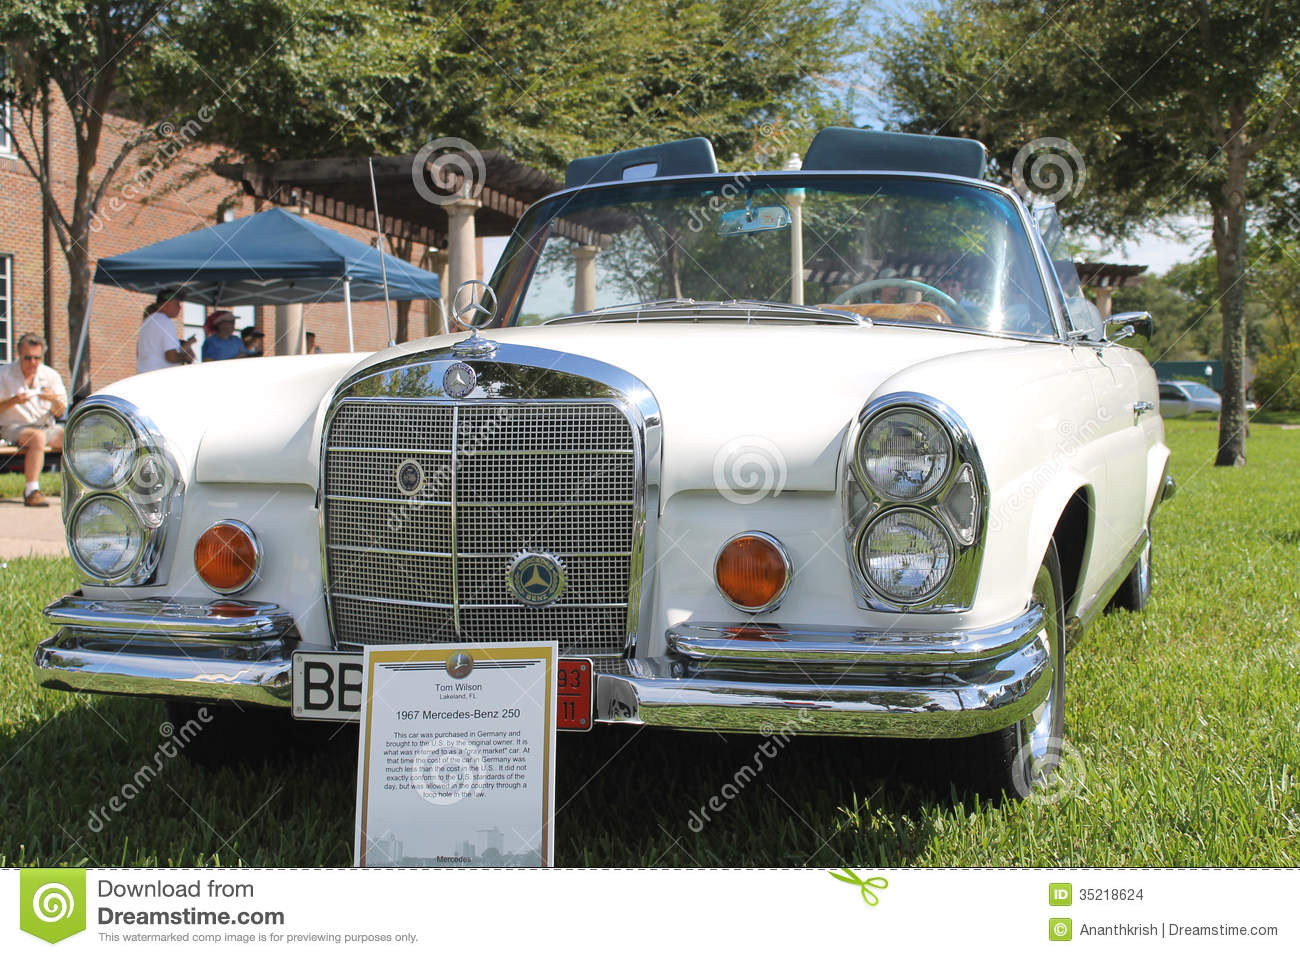 Old Mercedes Benz 250 Car At The Car Show Editorial Stock